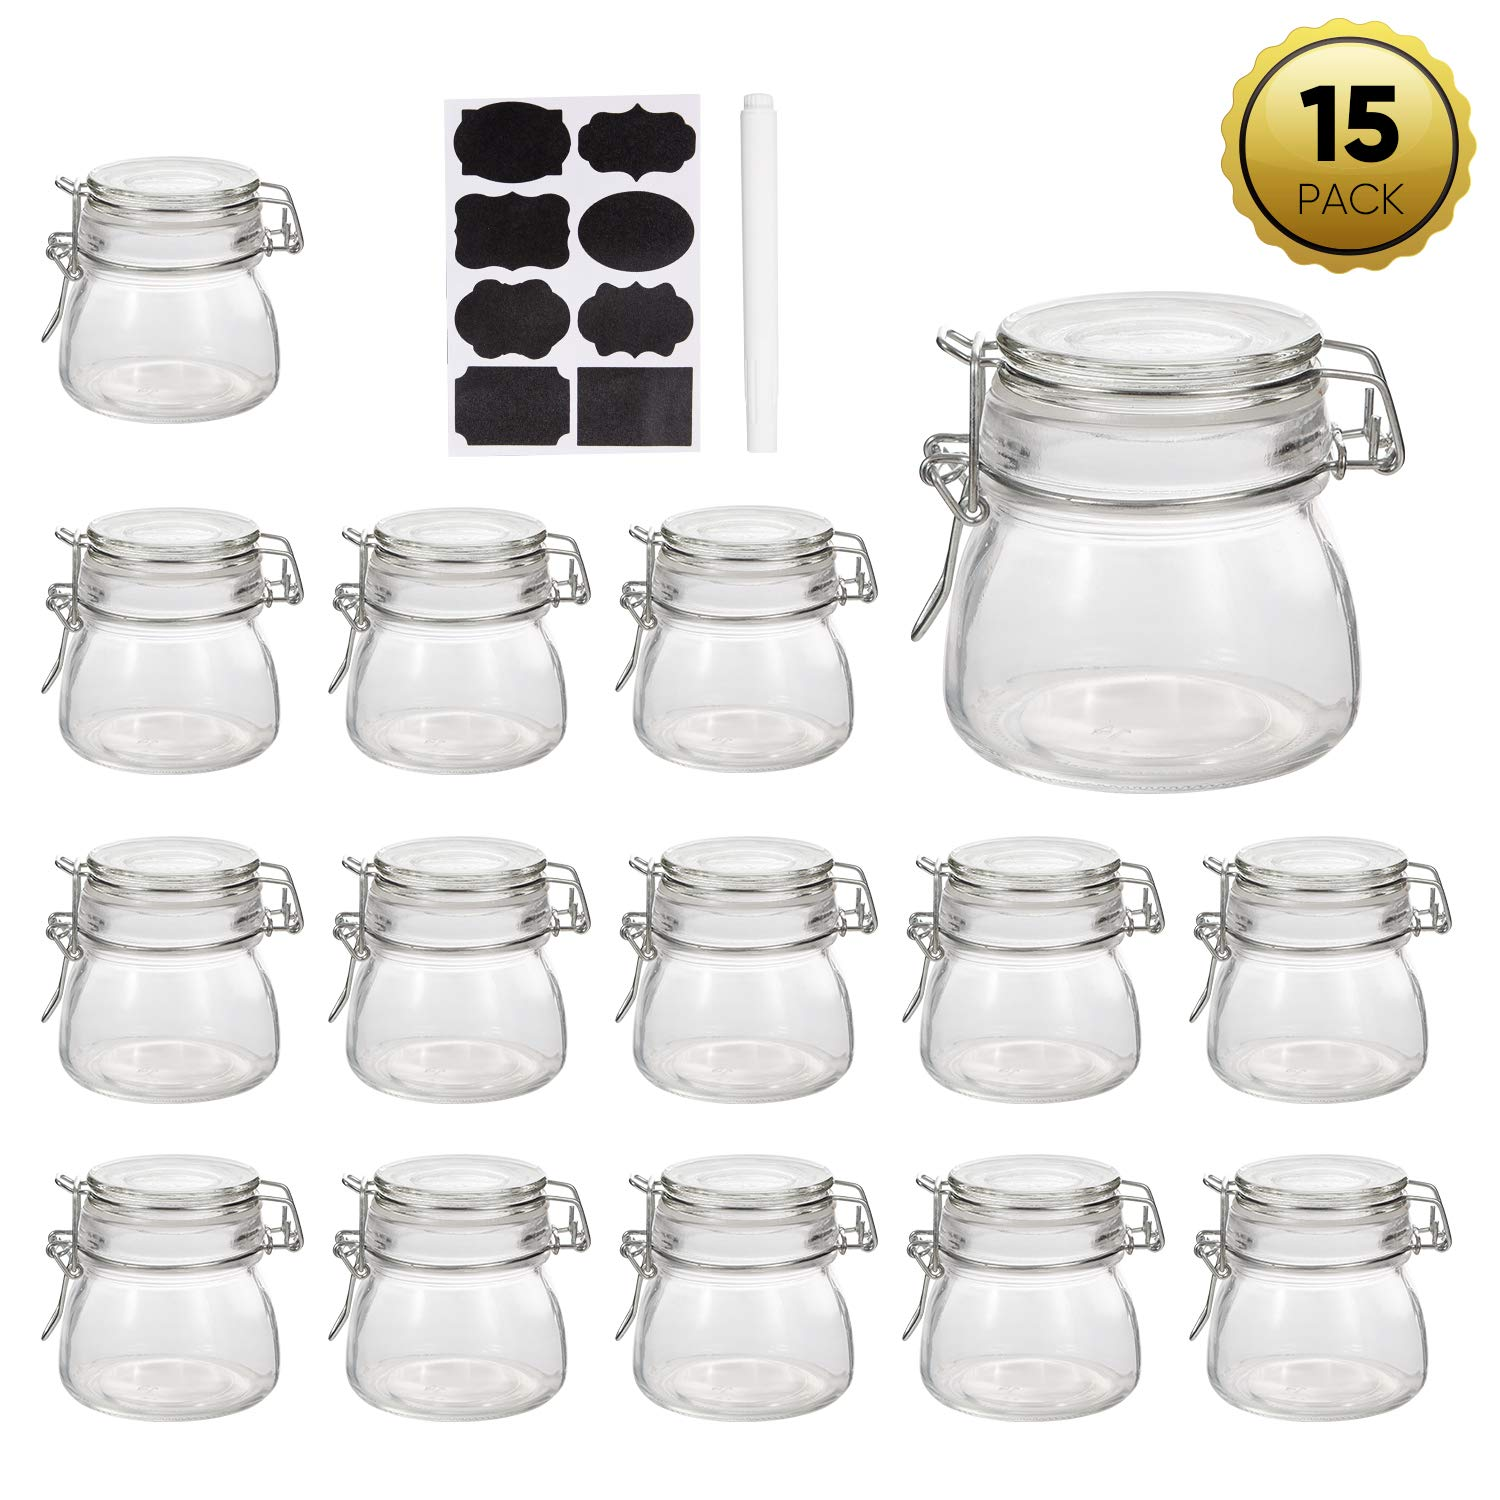 Mini Mason Jars,Accguan 5 OZ Glass Jars with Rubber Gasket and Hinged Lid,Small Canning JarsIdeal for storage,coffee,beans,sugar,snacks,candy,coookies,dry food,Set of 15 by Accguan (Image #1)